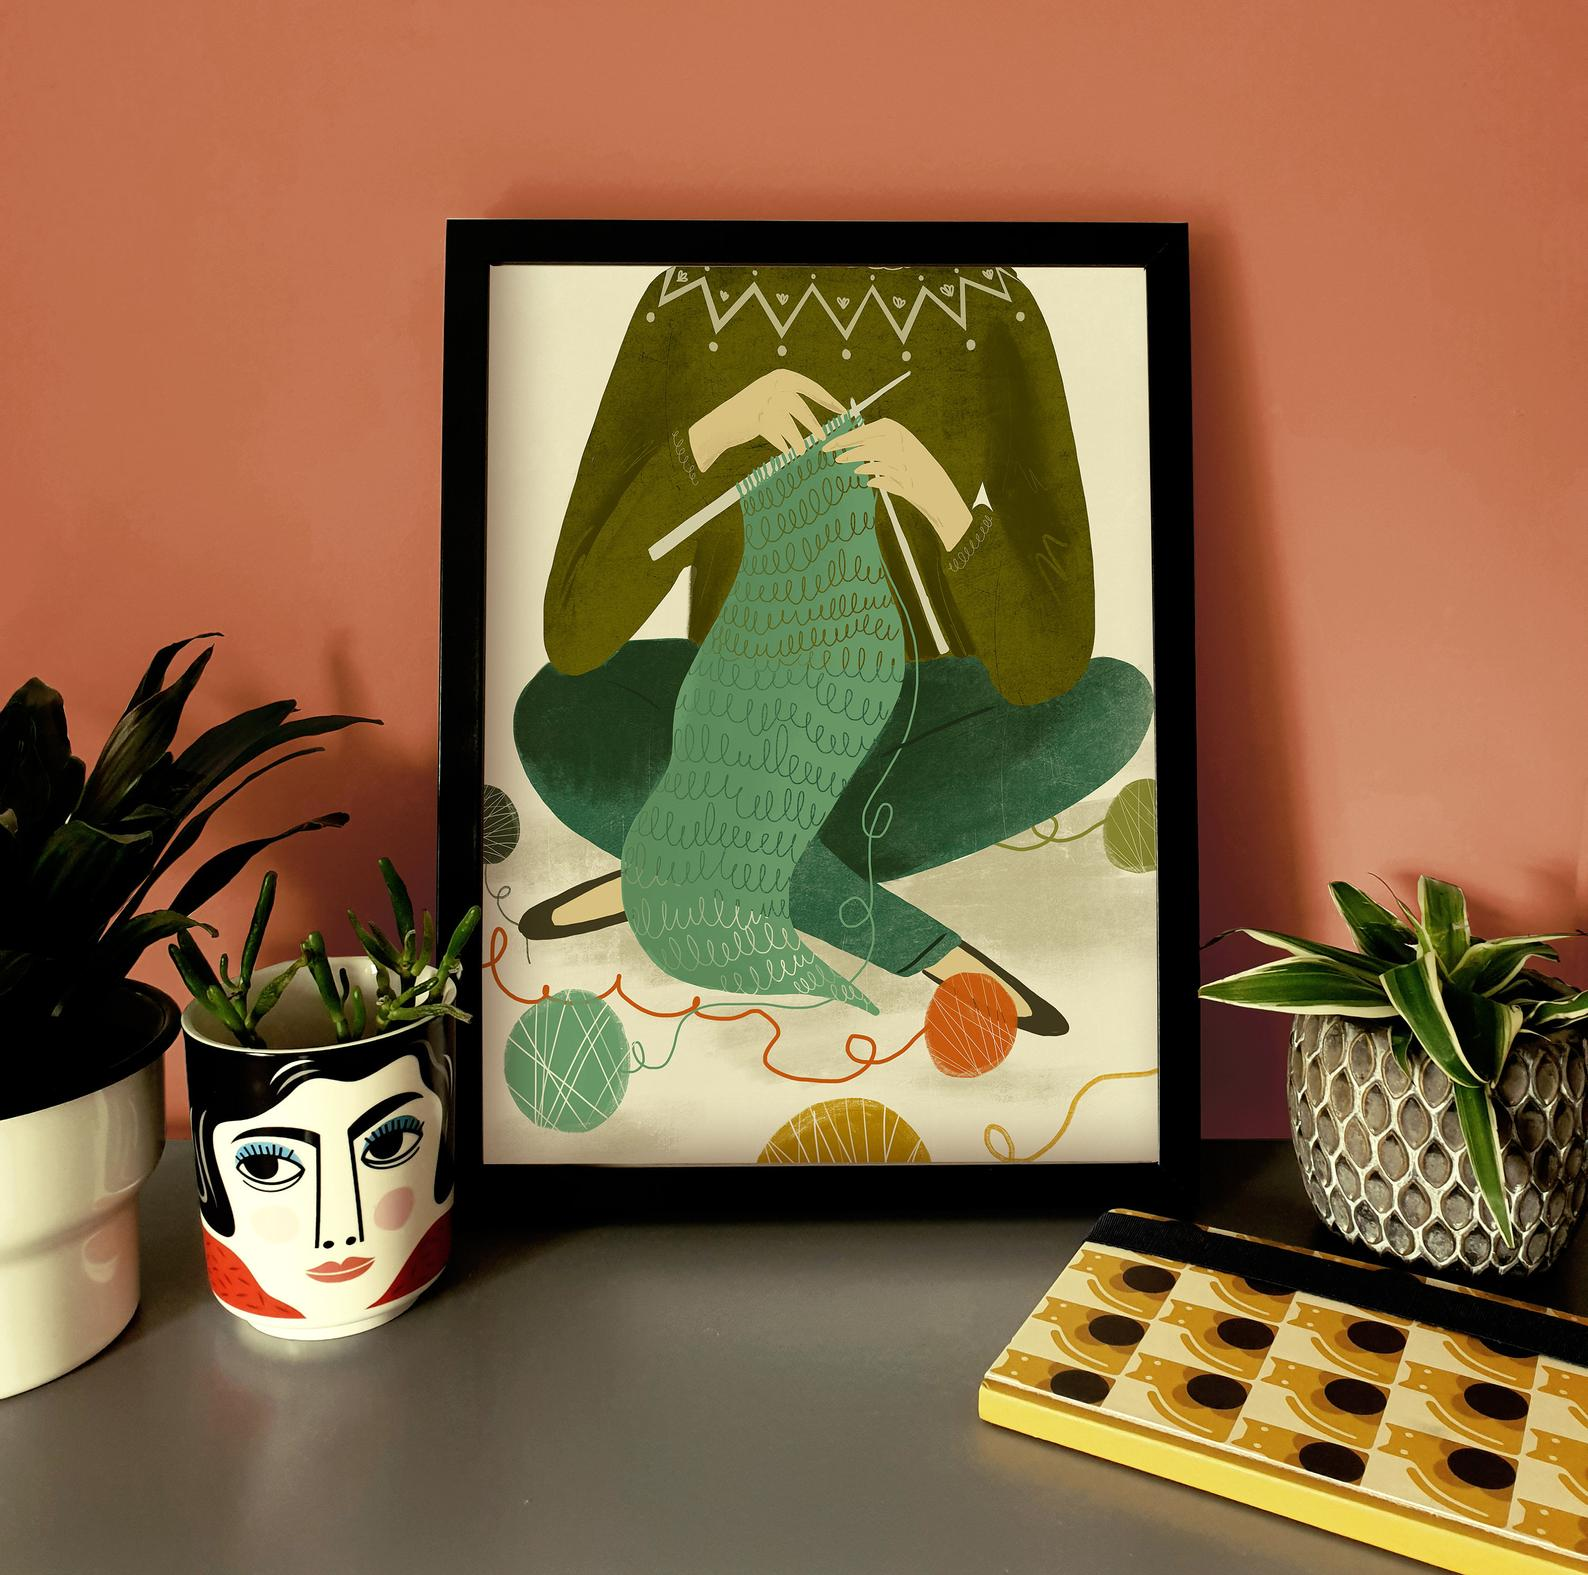 A print of a knitter from the shoulders down sitting cross legged and knitting a green scarf on straight needles. Next to the framed print are houseplant in pots.